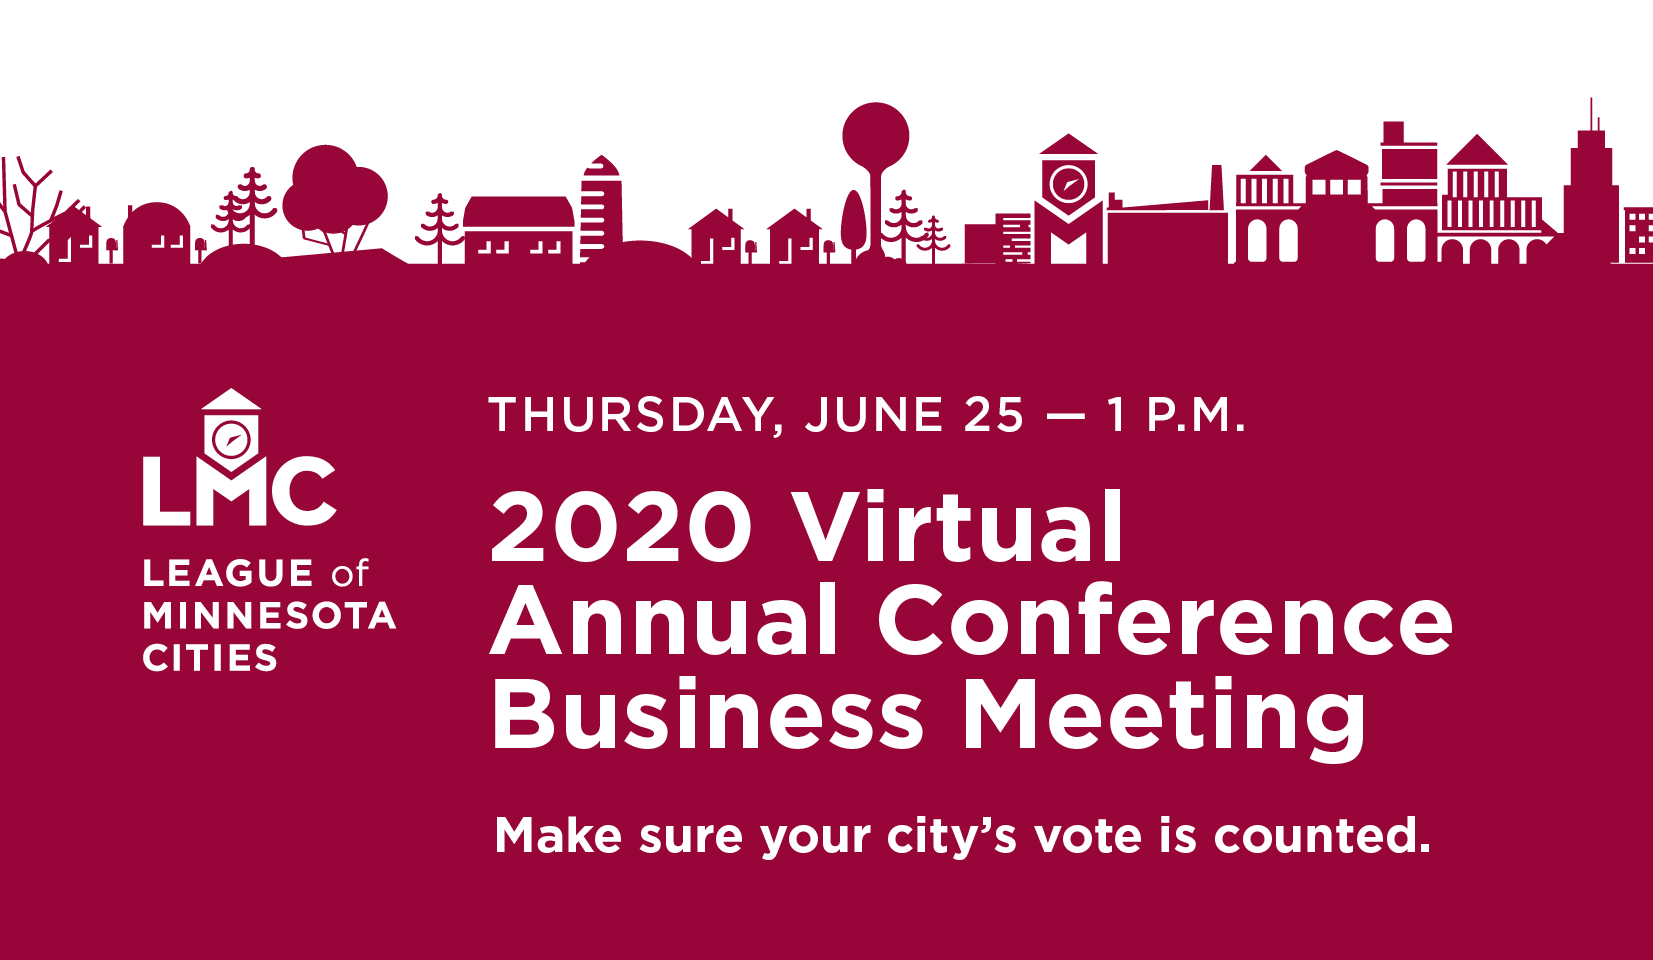 2020 Virtual Annual Conference Business Meeting on a red cityscape background